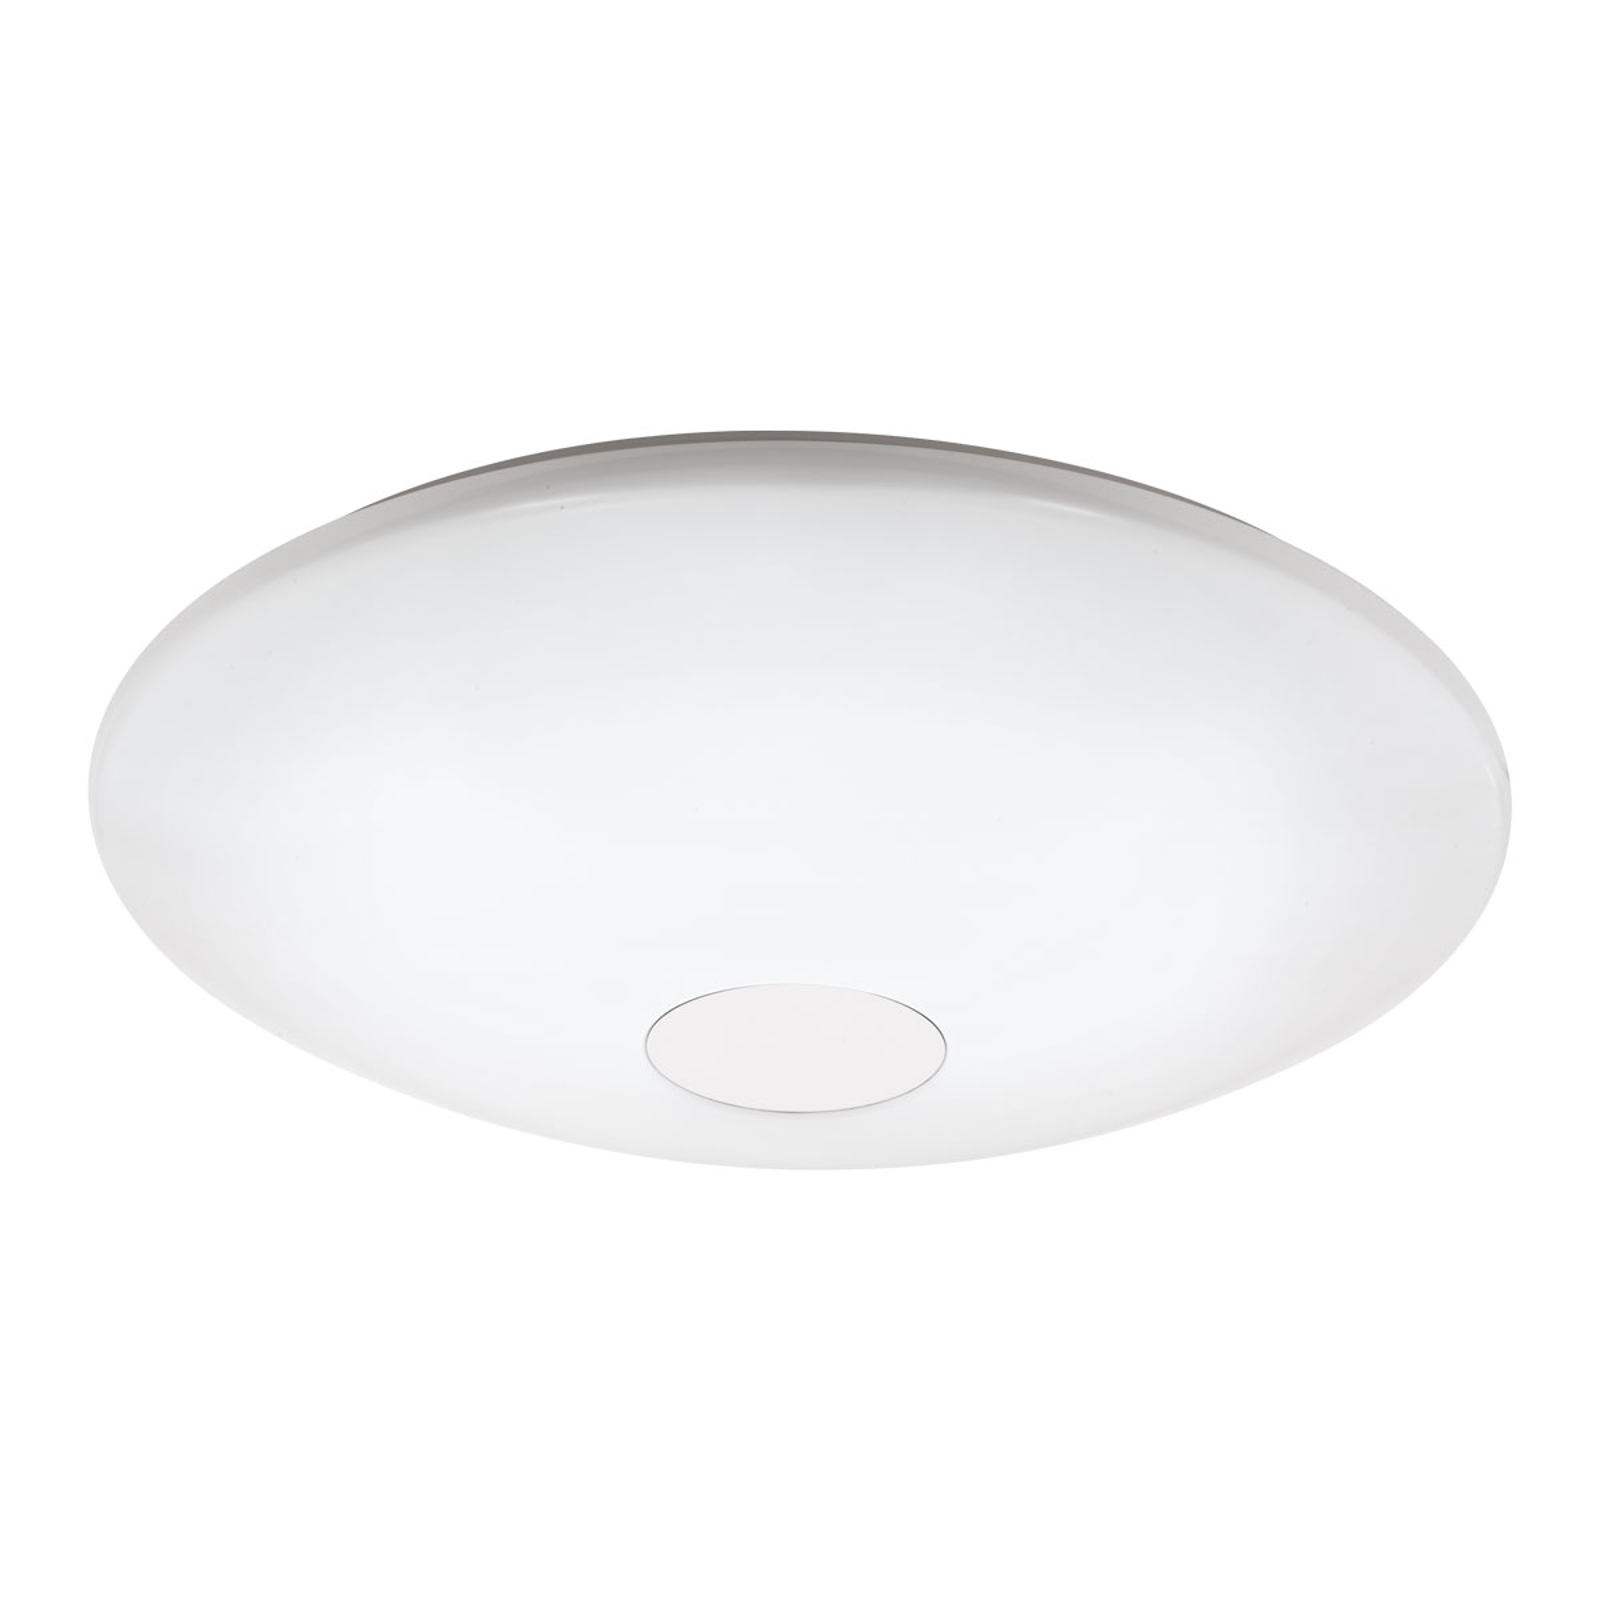 EGLO connect Totari-C LED plafondlamp, wit-chroom